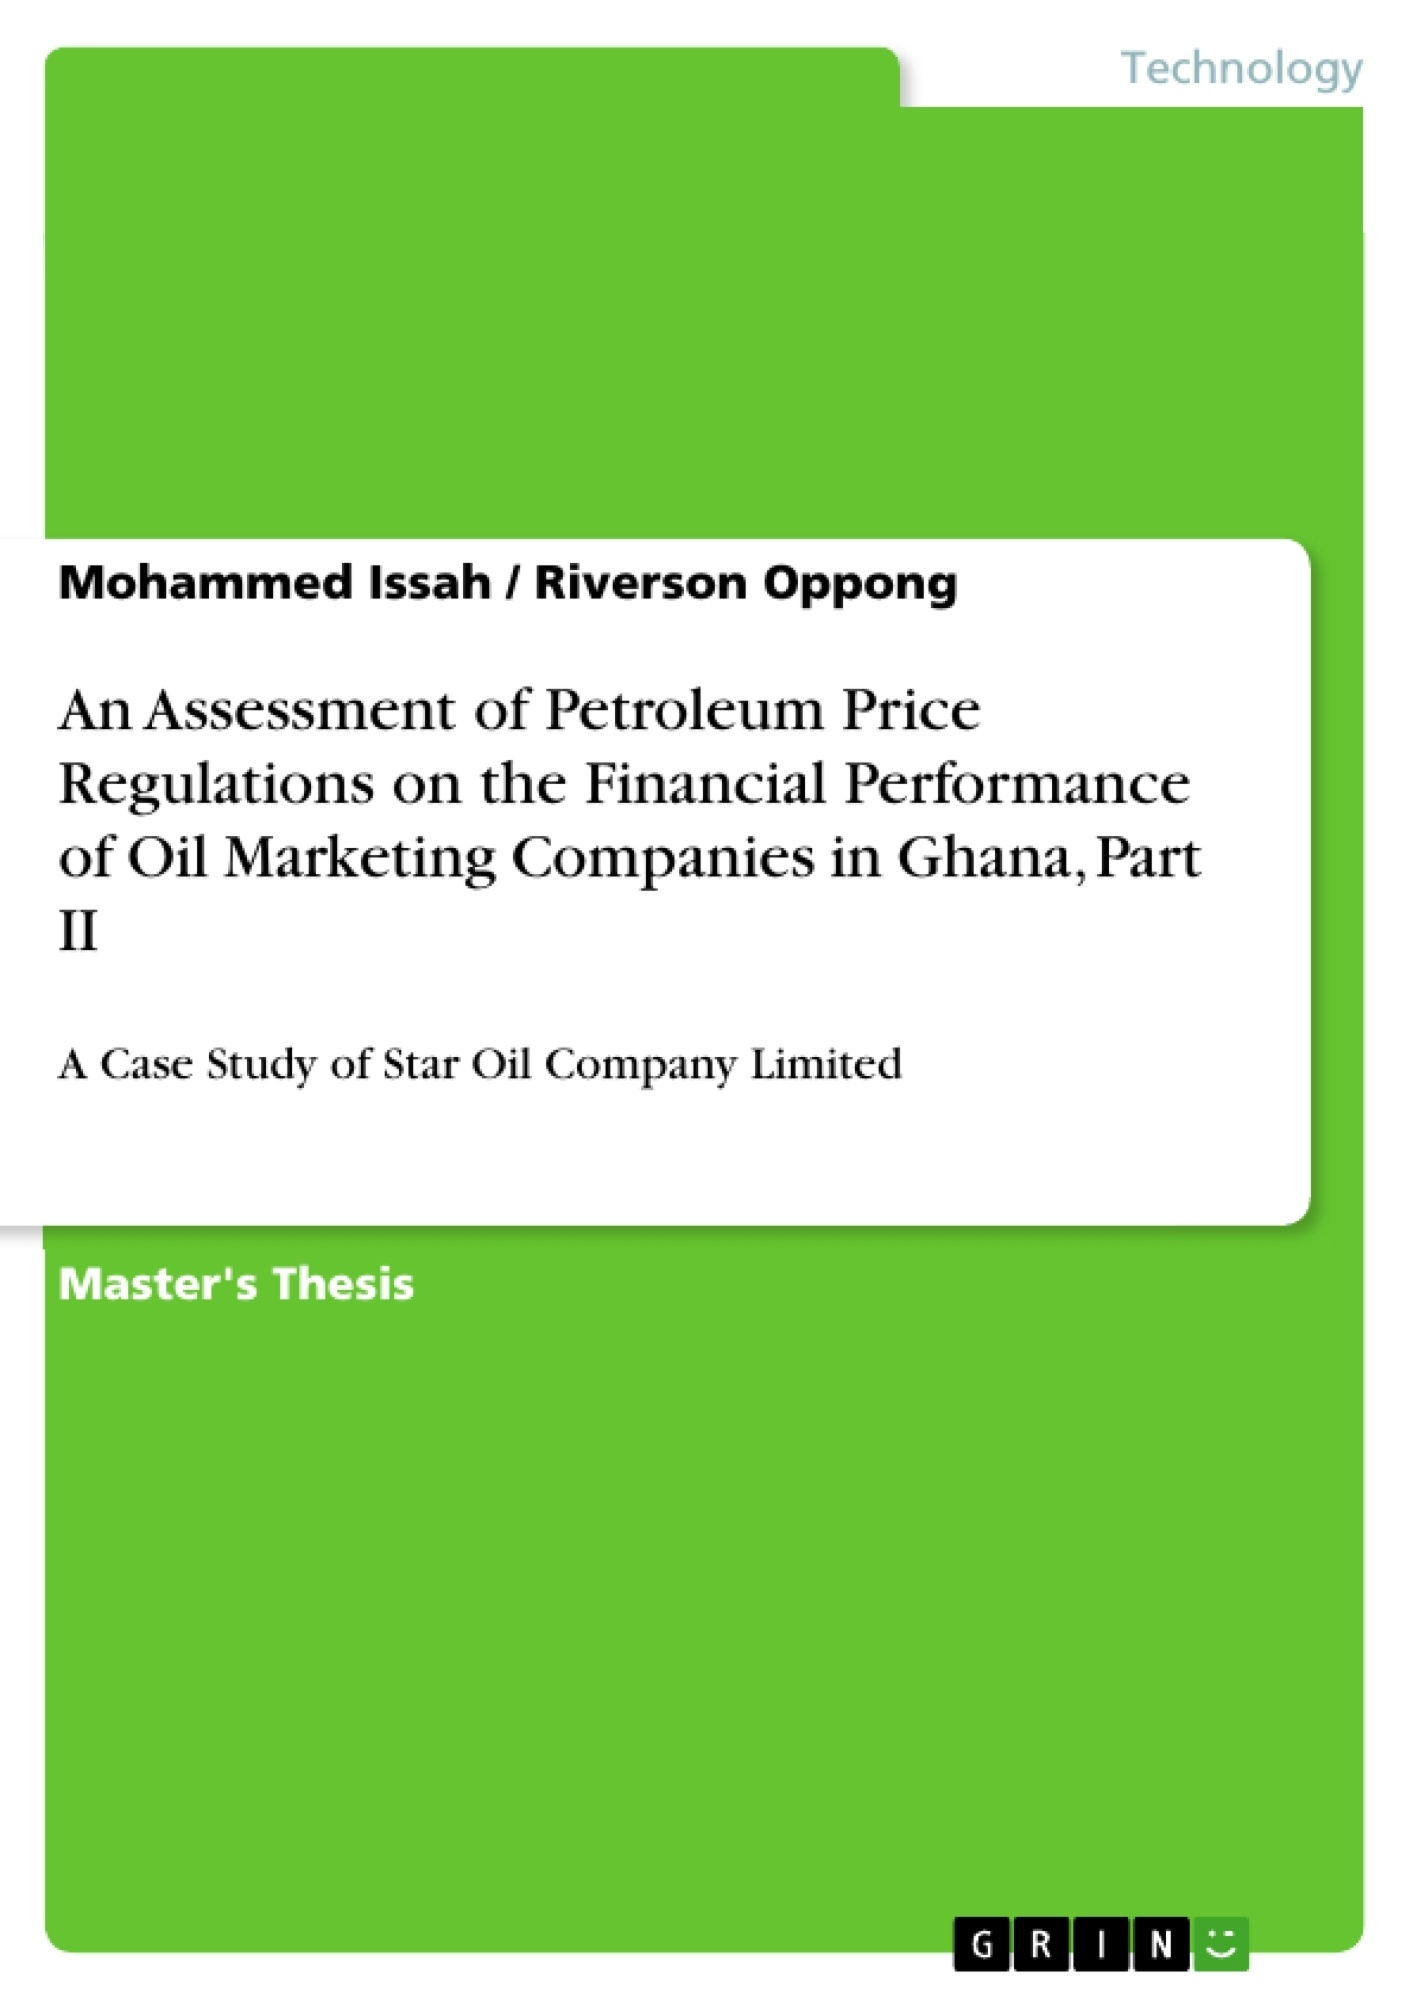 Title: An Assessment of Petroleum Price Regulations on the Financial Performance of Oil Marketing Companies in Ghana, Part II